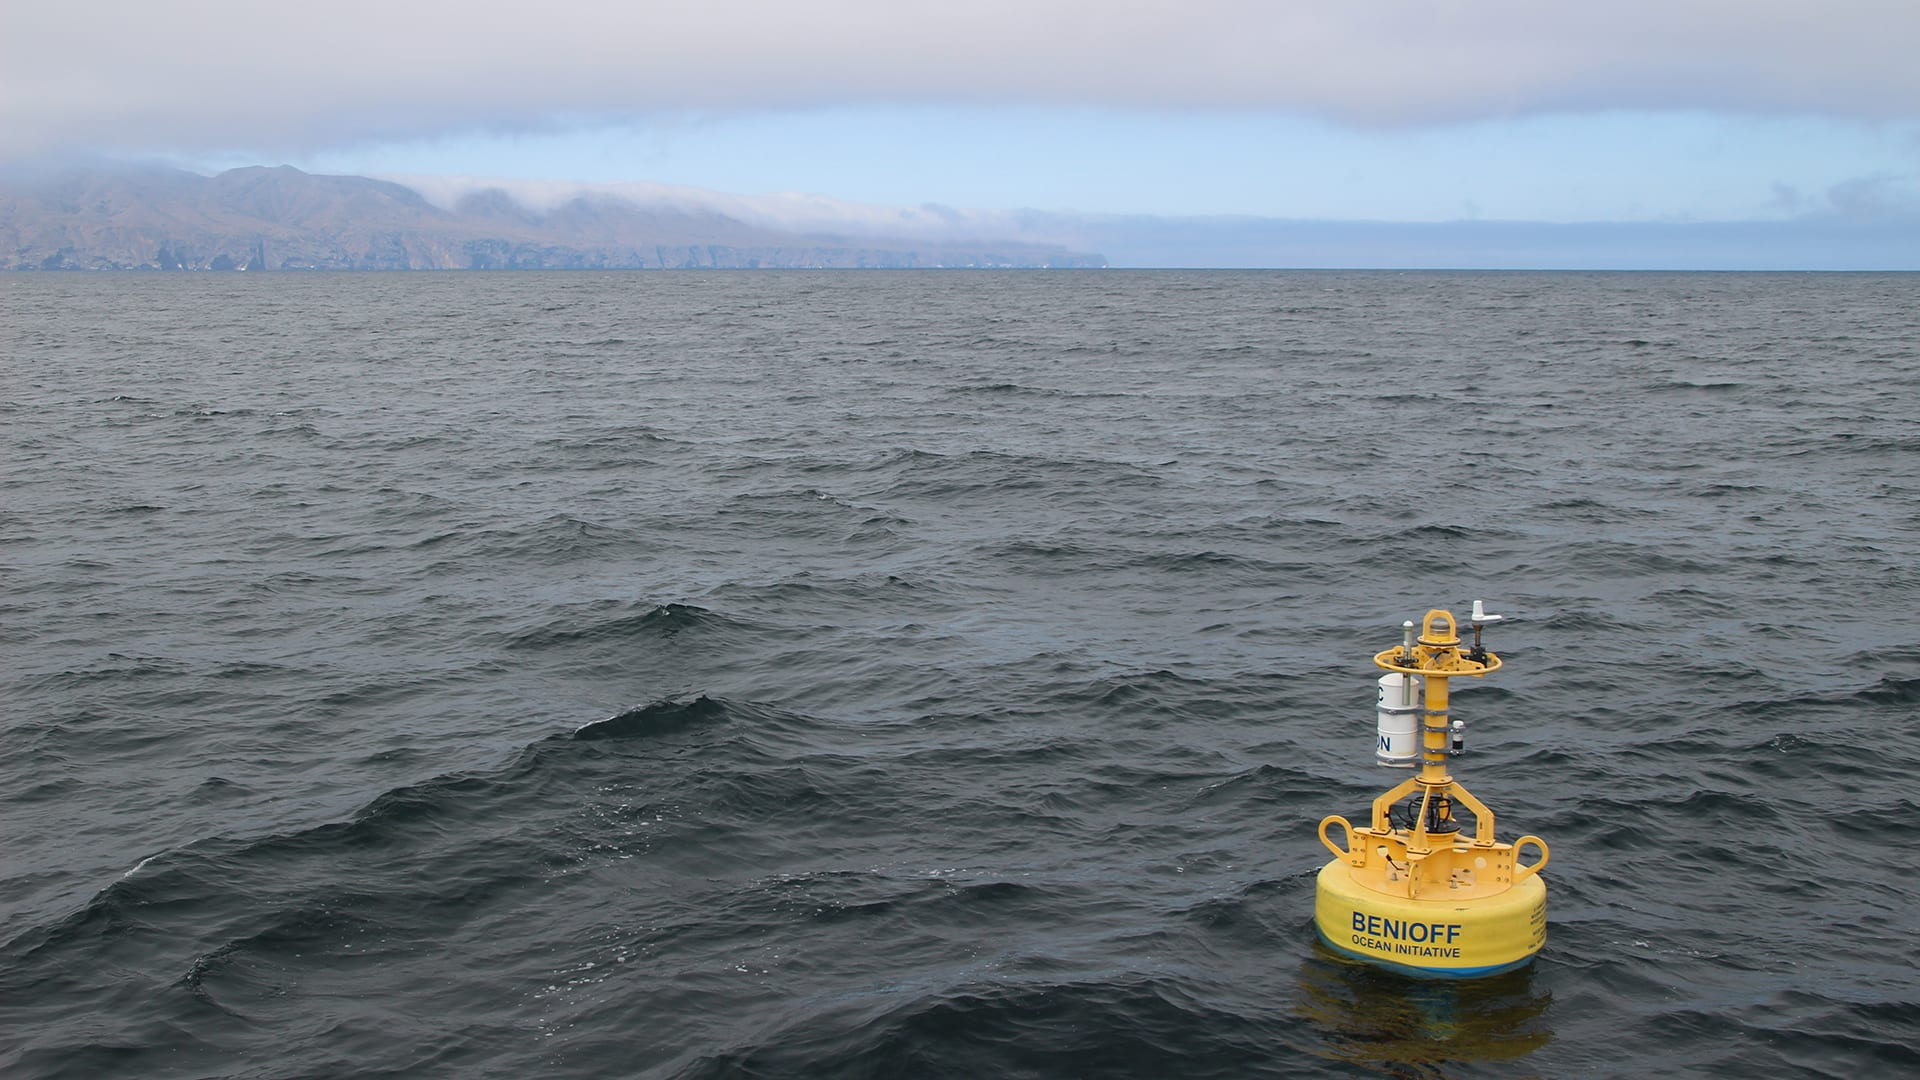 A buoy outfitted with  passive acoustic technology developed by Woods Hole Oceanographic Institution and Texas A&M University at Galveston, floats idly near the shipping lanes of the Santa Barbara Channel in 2019 (Photo courtesy of Morgan Visalli, © Benioff Ocean Initiative)